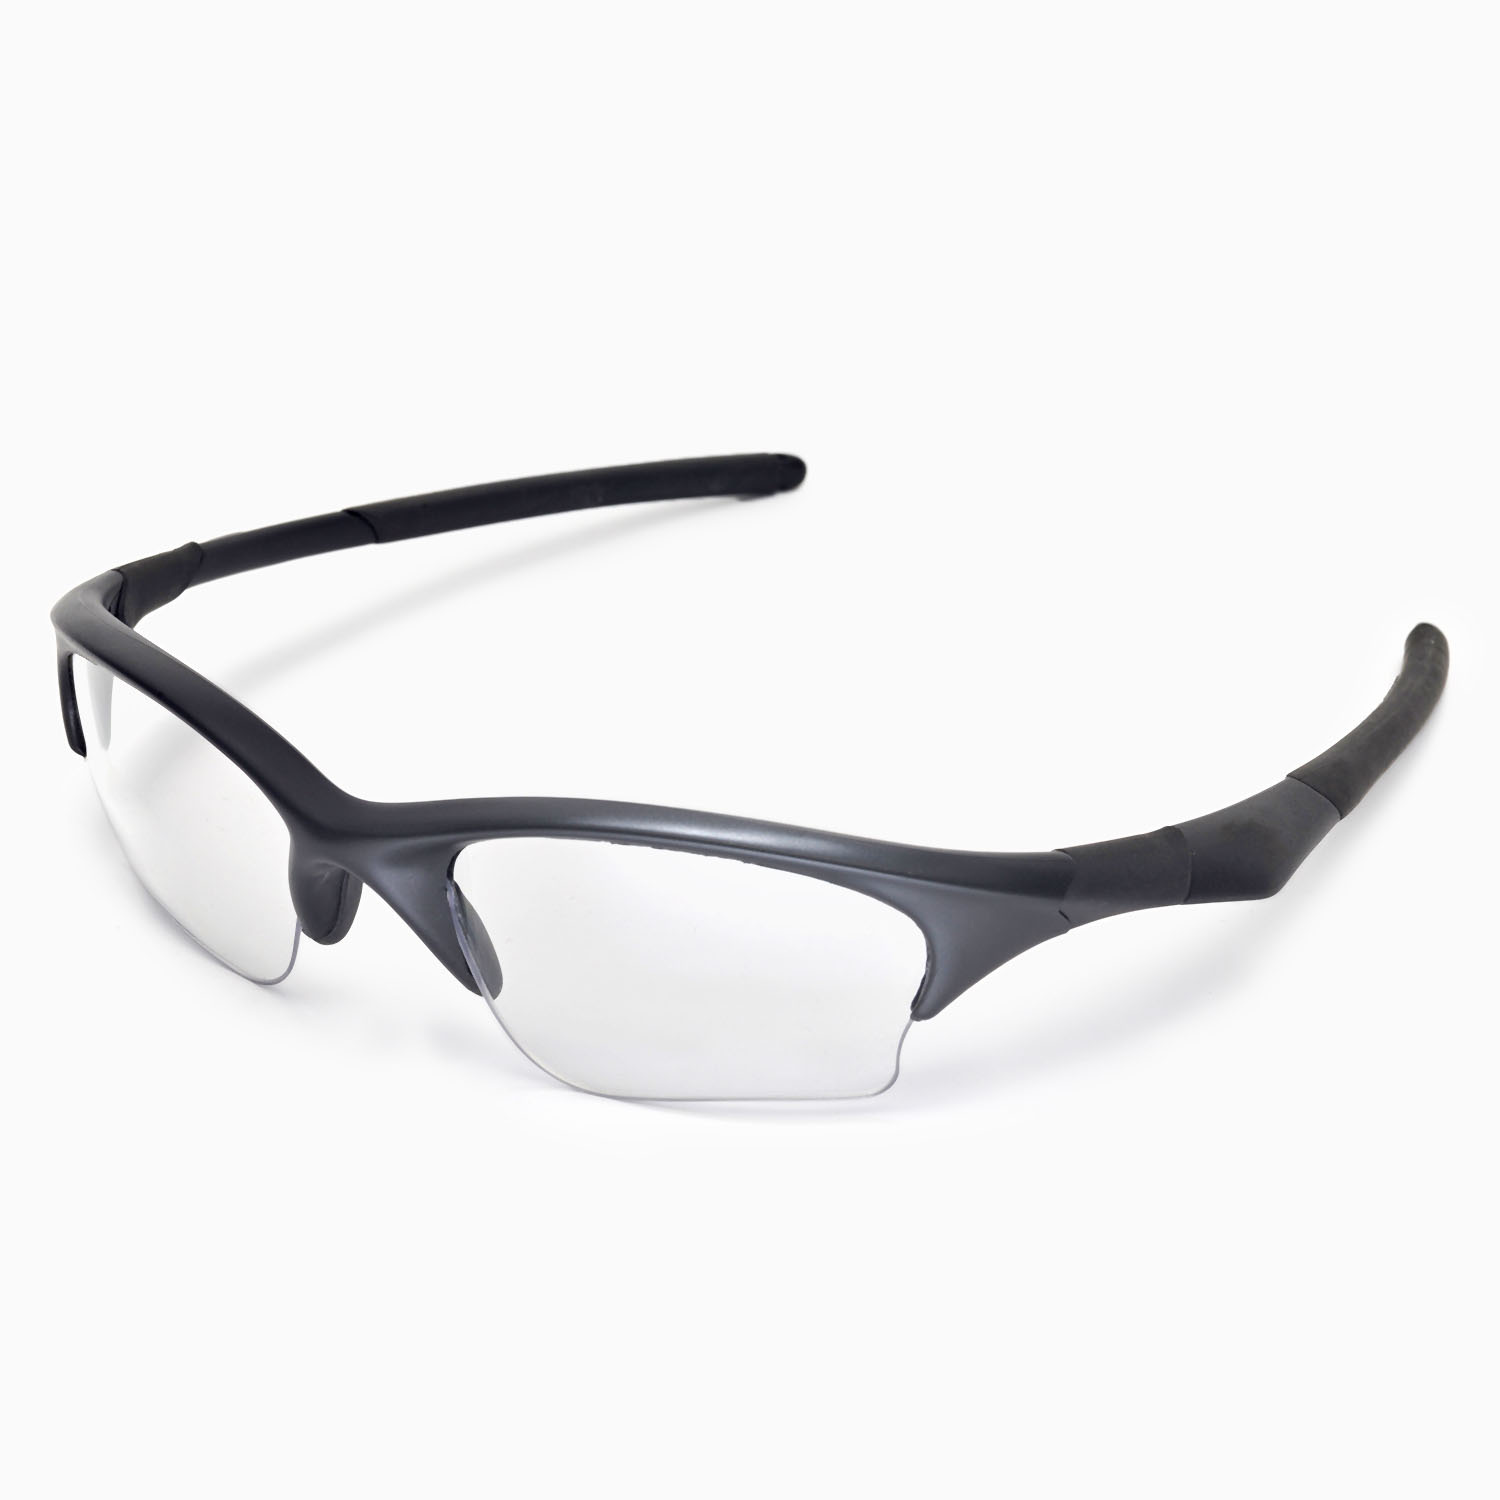 oakley glasses clear lens  new walleva clear lenses for oakley half jacket xlj